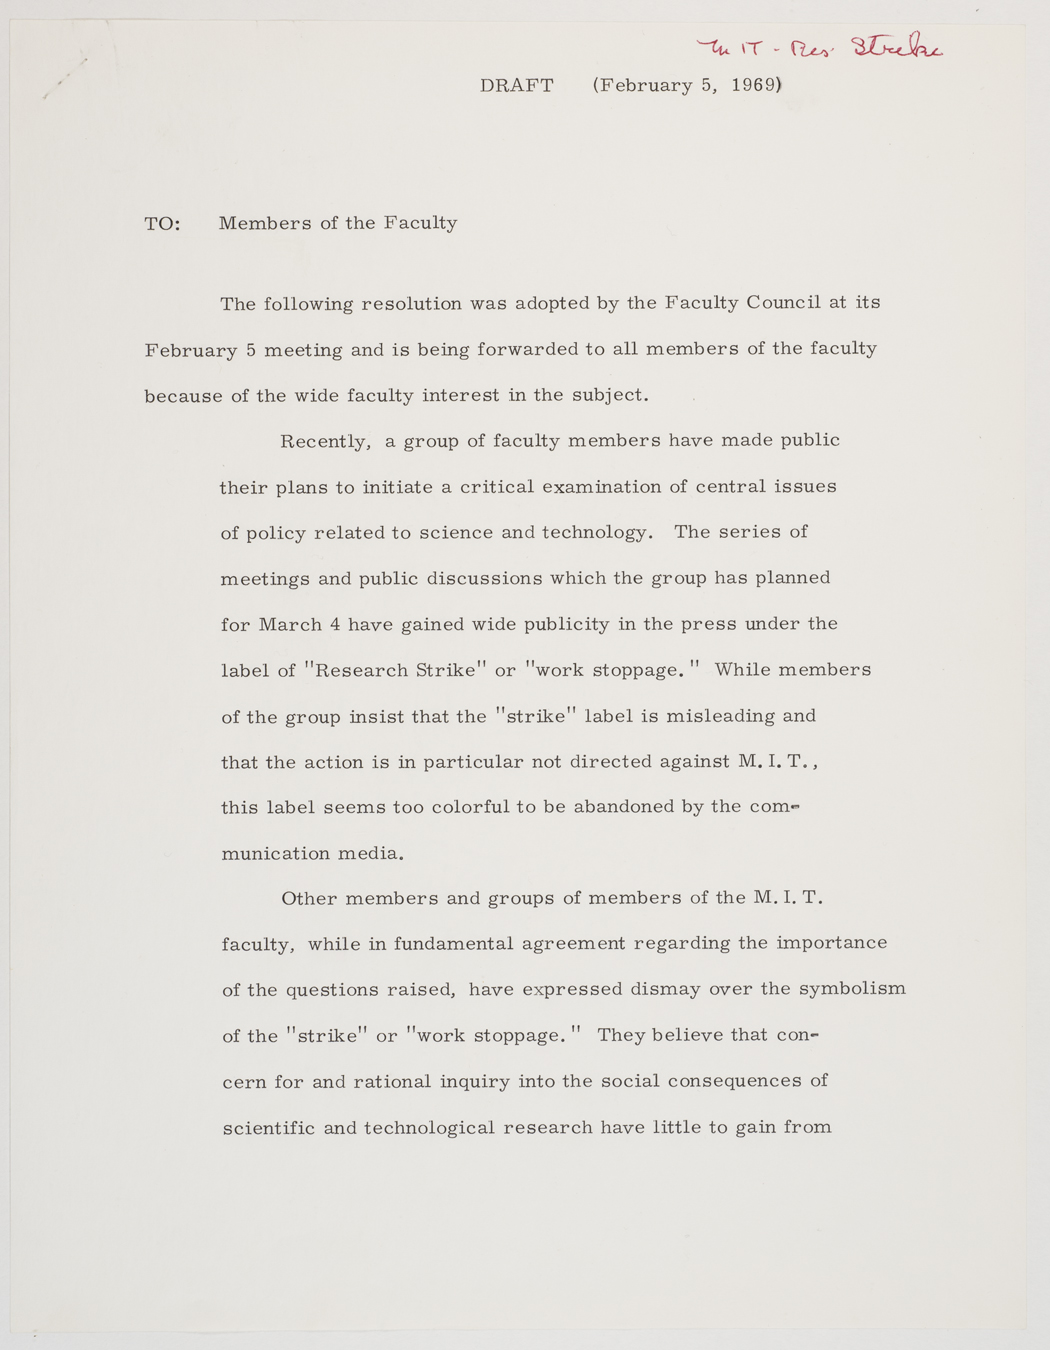 To members of the faculty draft of resolution, 1969 February 5, AC-0118, Box 107.